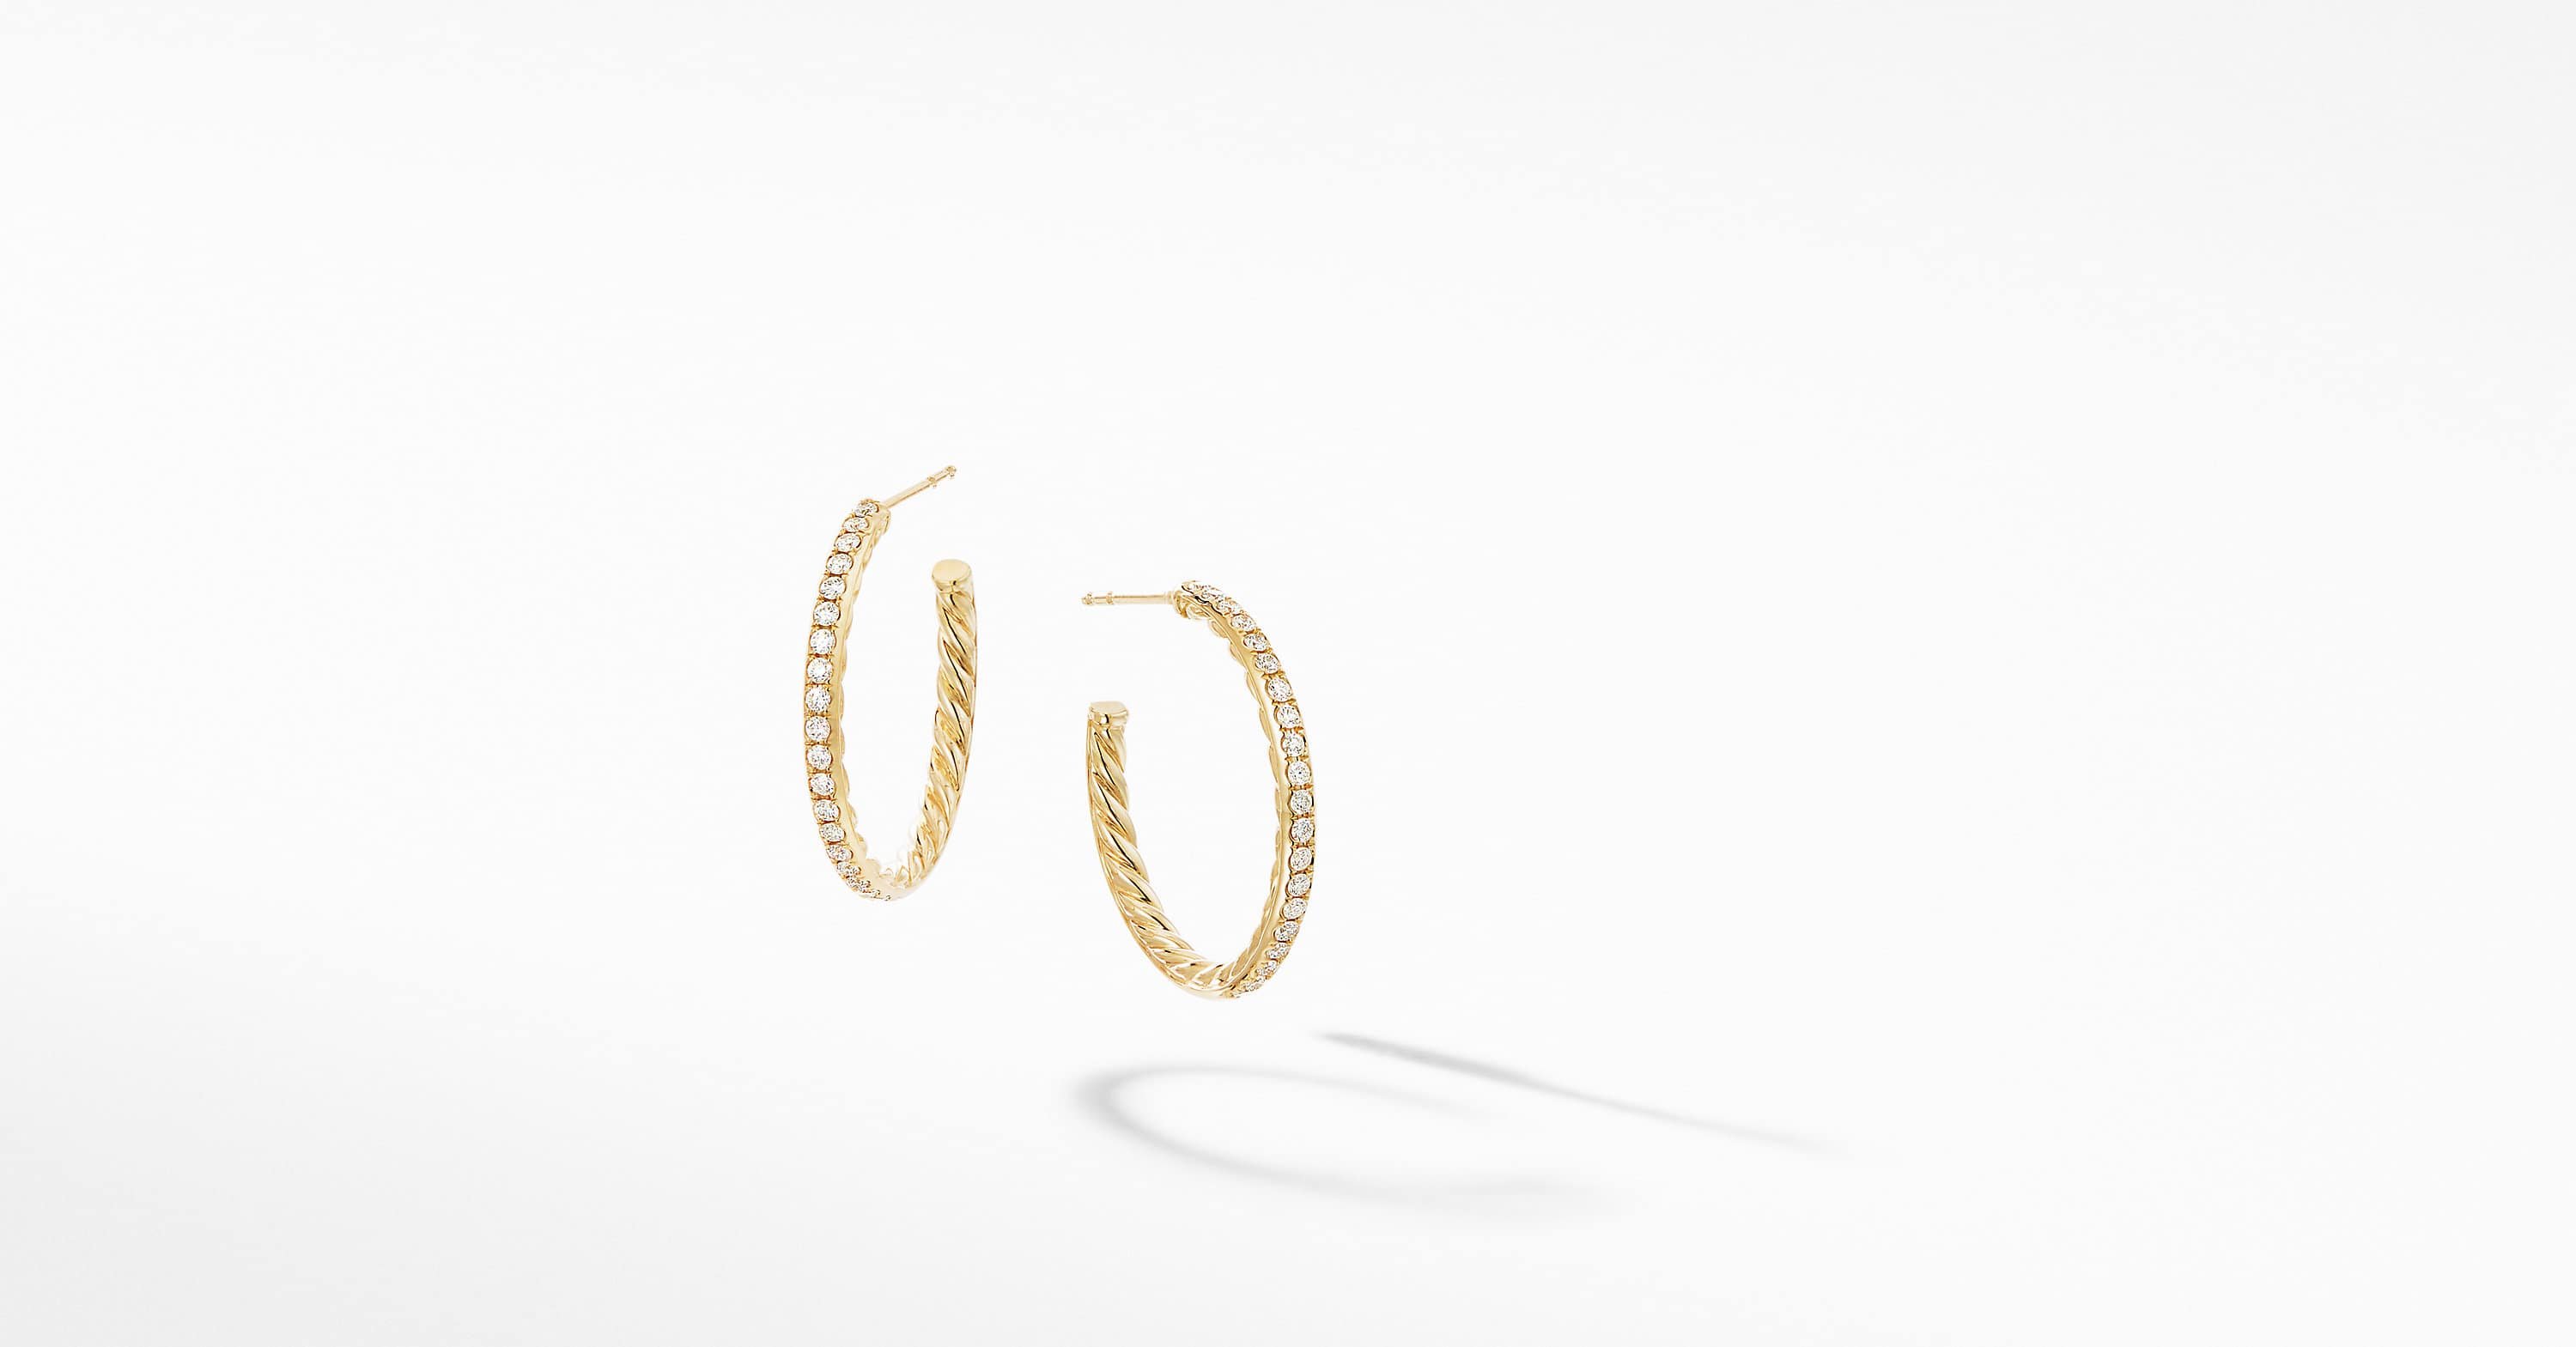 Small Hoop Earrings in 18K Yellow Gold with Pavé